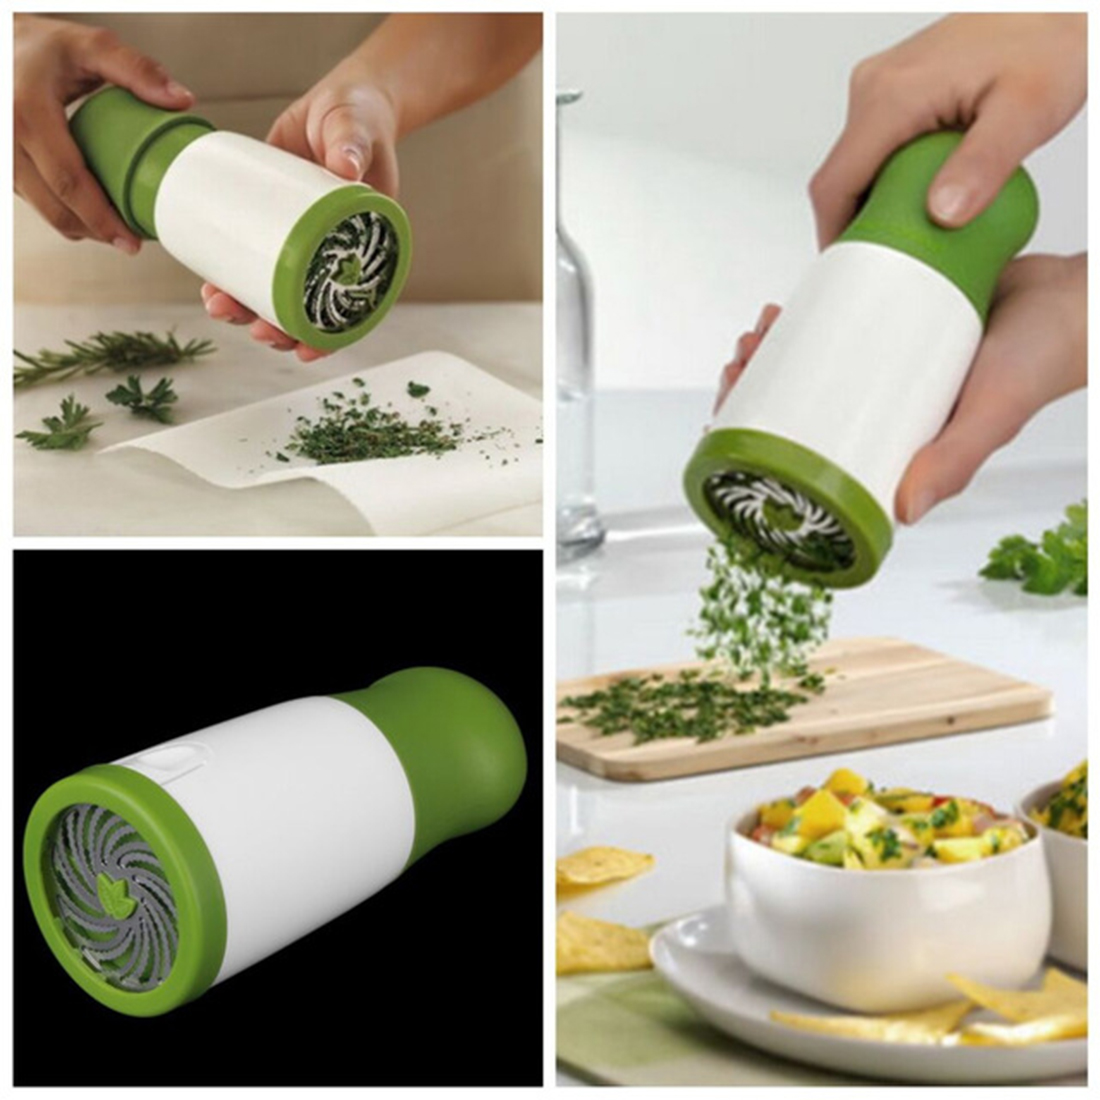 High Quality Spice Parsley Shredder Chopper Fruit Vegetable Cutter New Creative Cooking Tools parsley shredder